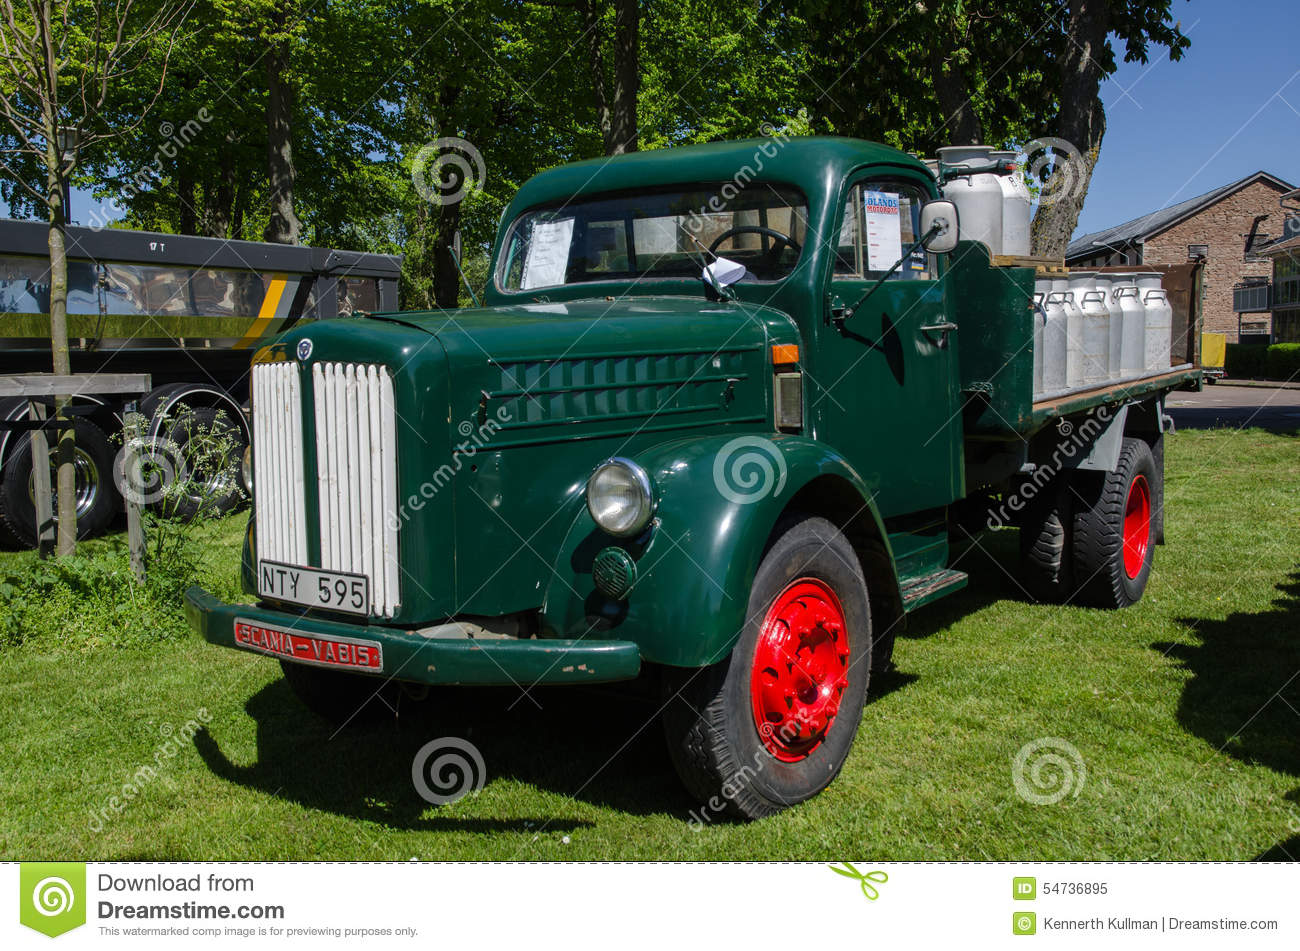 7766215036 further Editorial Image Scania Vabis Old Timer Lorry Borgholm Sweden May Classic L Loaded Milk Cans Car Meeting Town Borgholm Image54736895 also 449234131558674204 besides 131064 Kolkata Statesman Vintage Classic Car Rally 2013 A 4 further Classic Car Seats. on 1950 antique cars